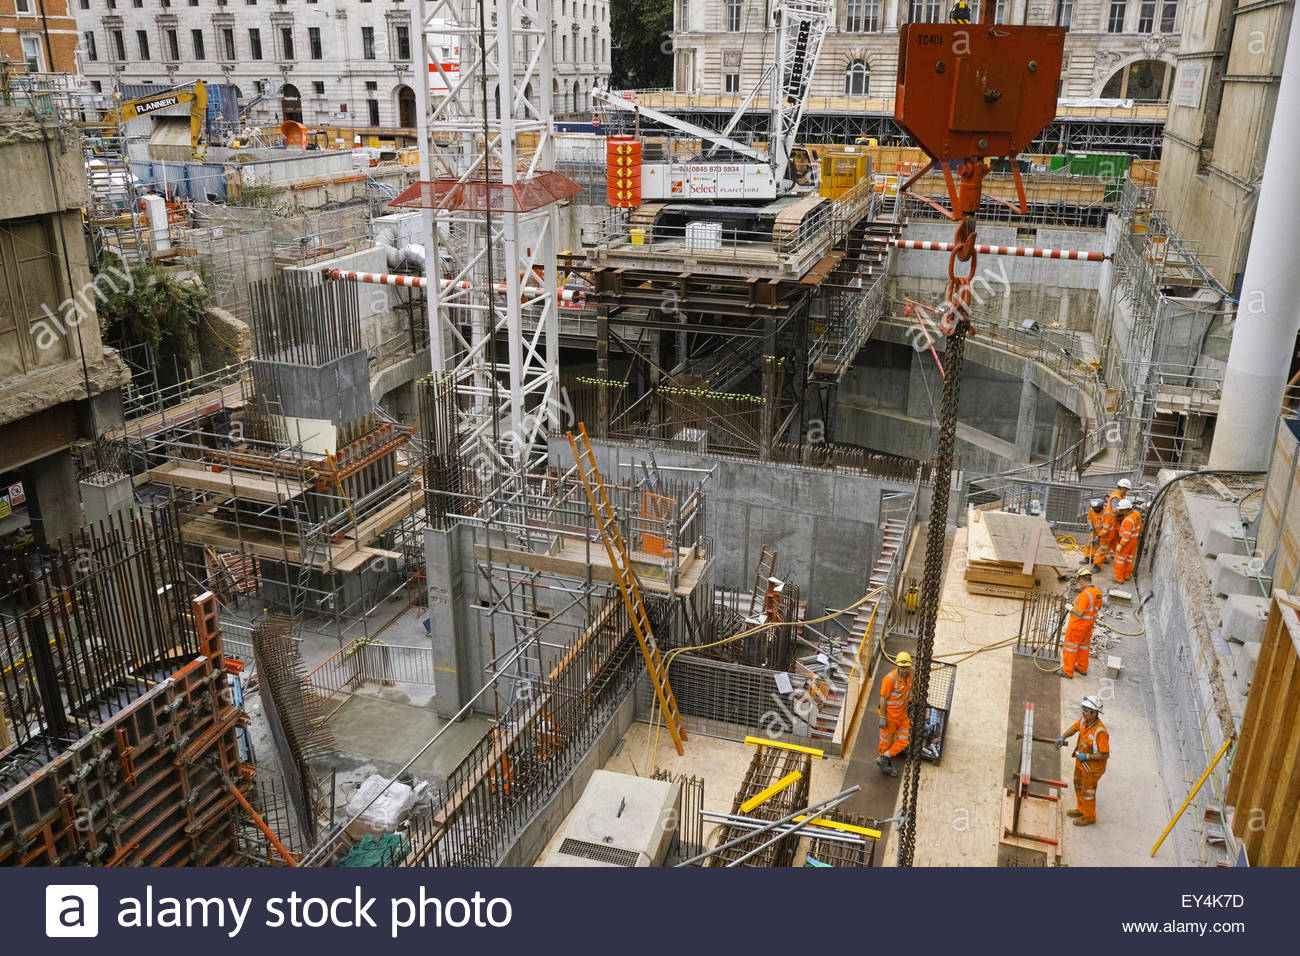 Crossrail construction work at Moorgate: City of London. - Stock Image